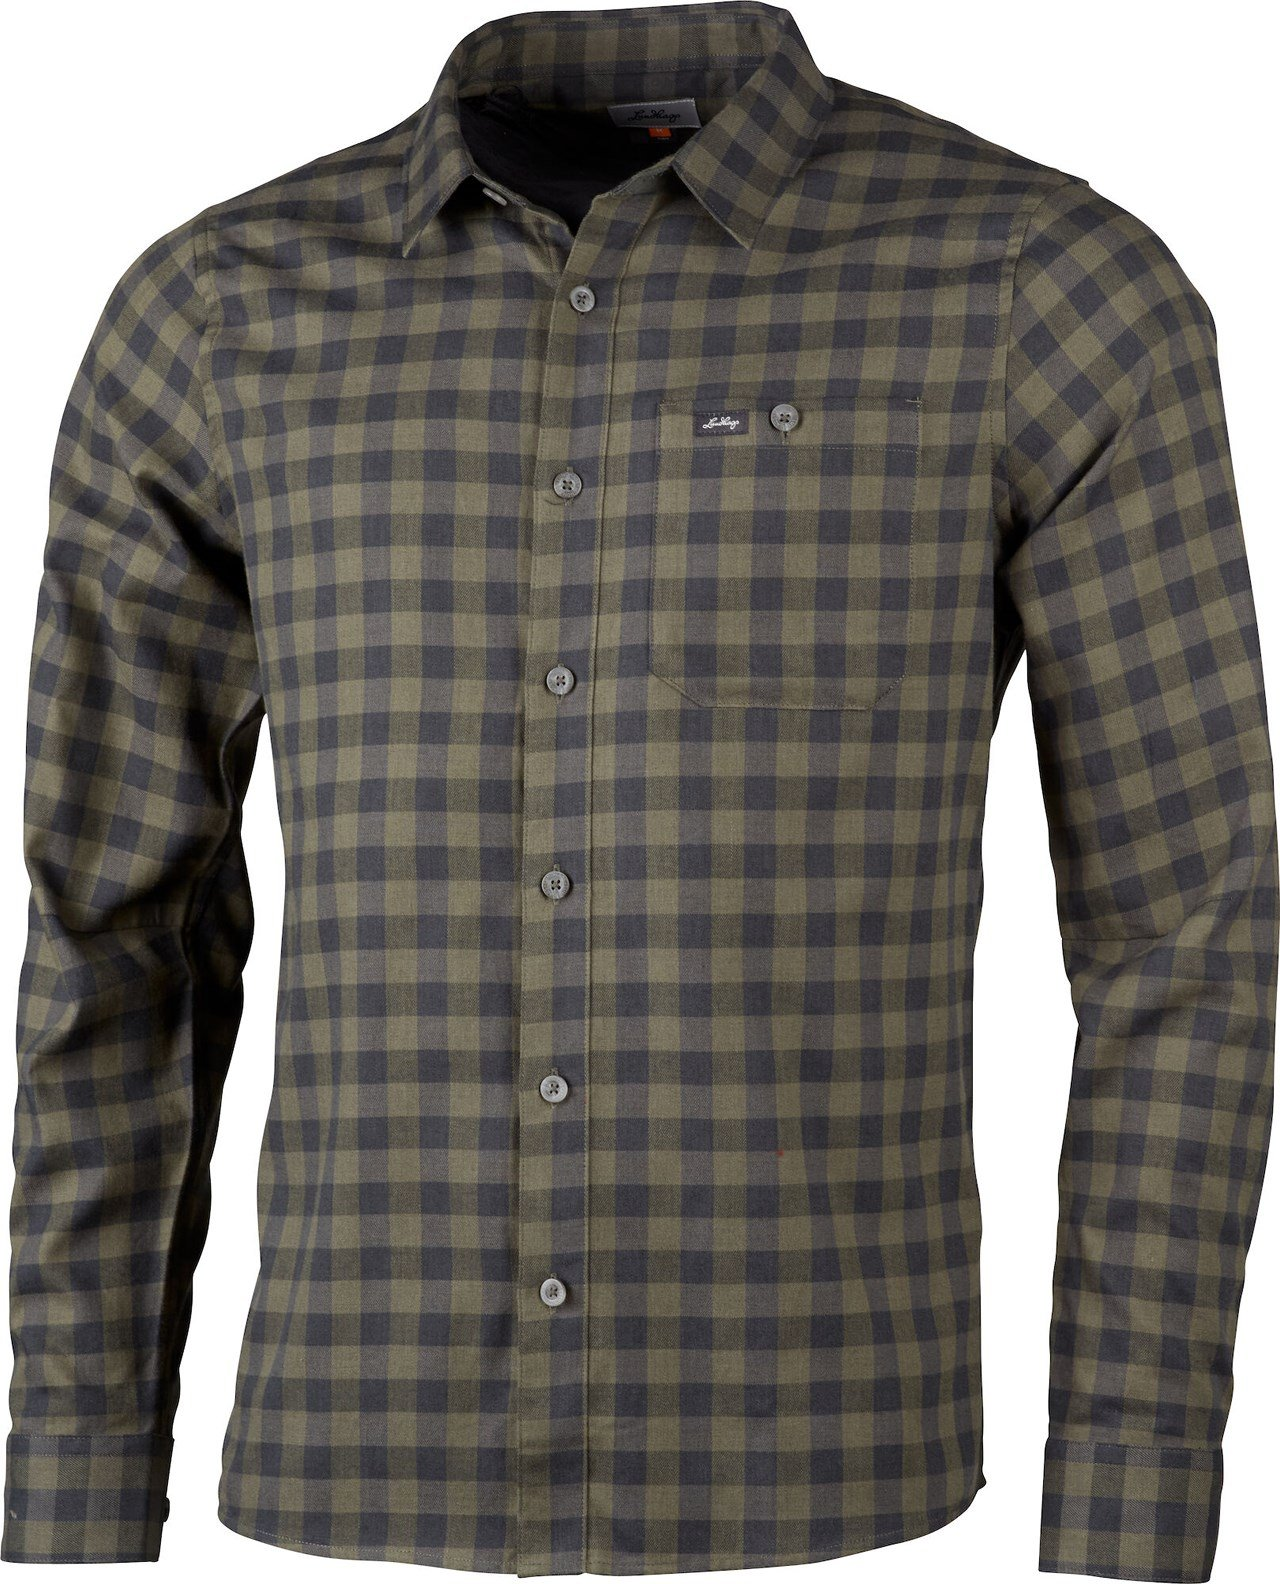 Lundhags - ekren ms ls shirt - forest green thumbnail